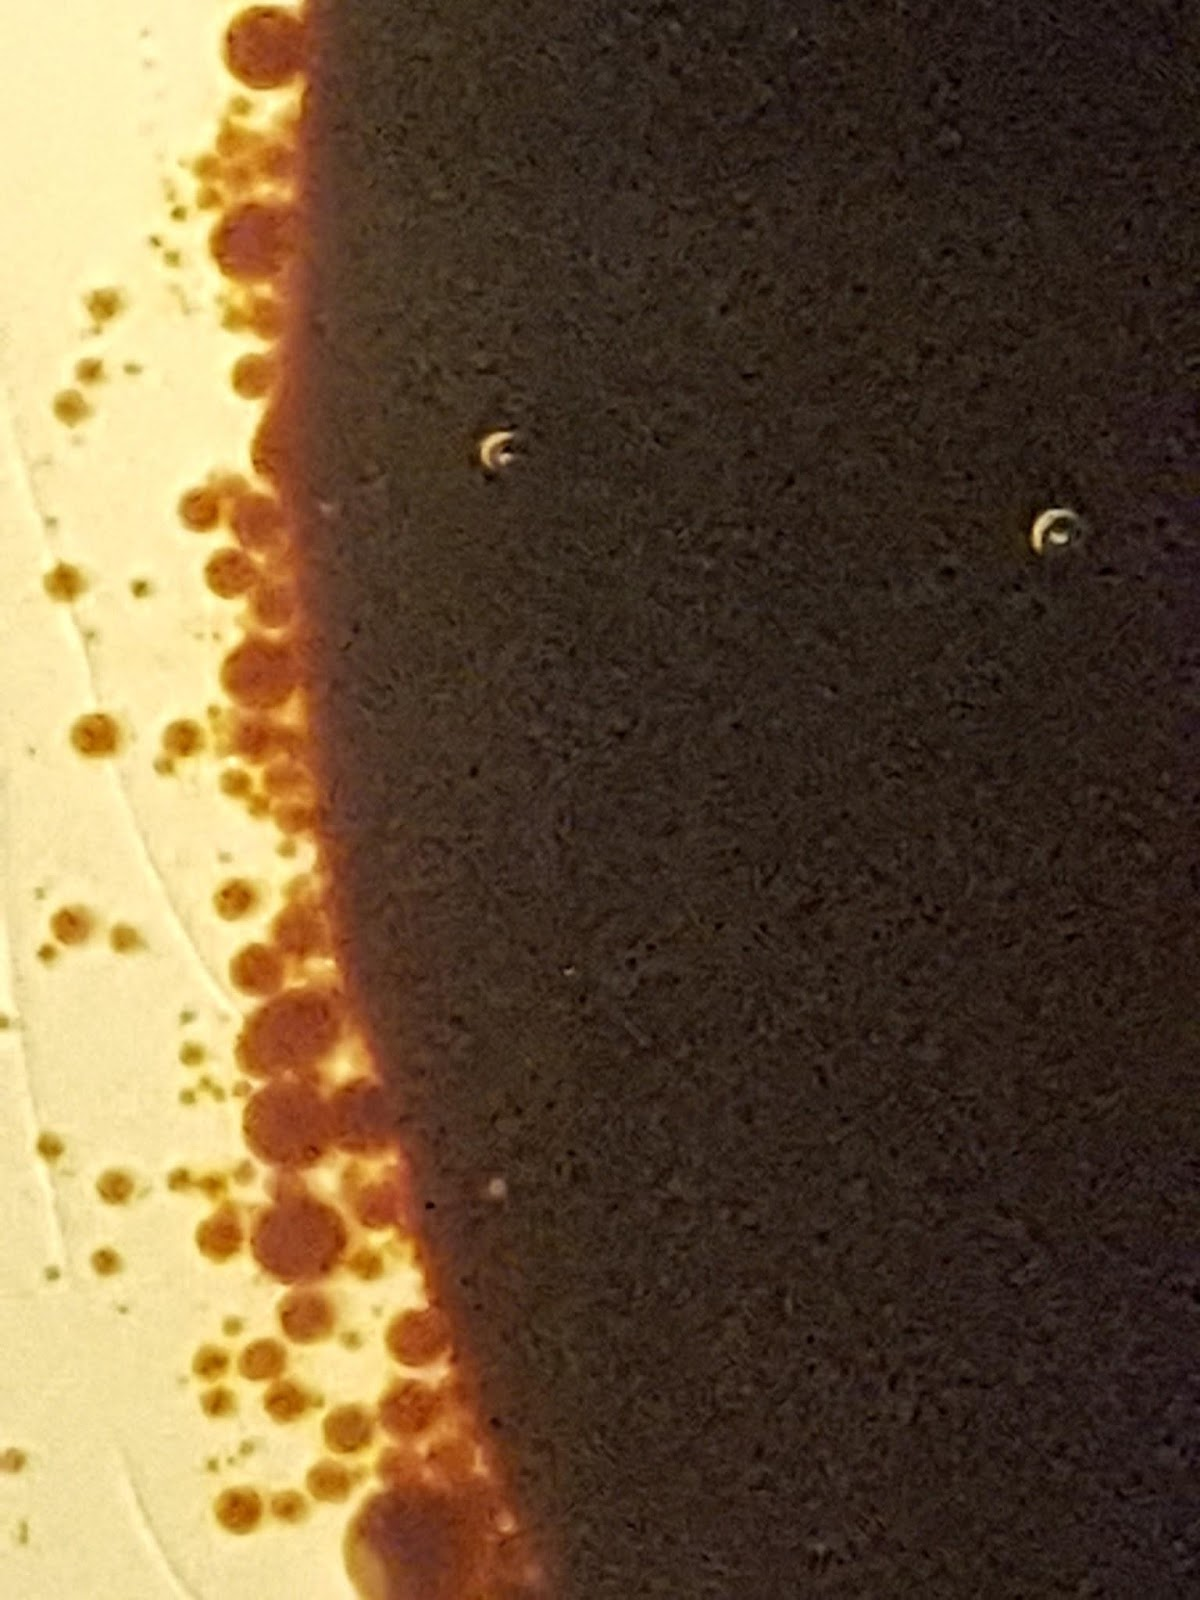 On the left there are lots of little brown droplets surrounding a large brown blob that makes up more than half the photo.